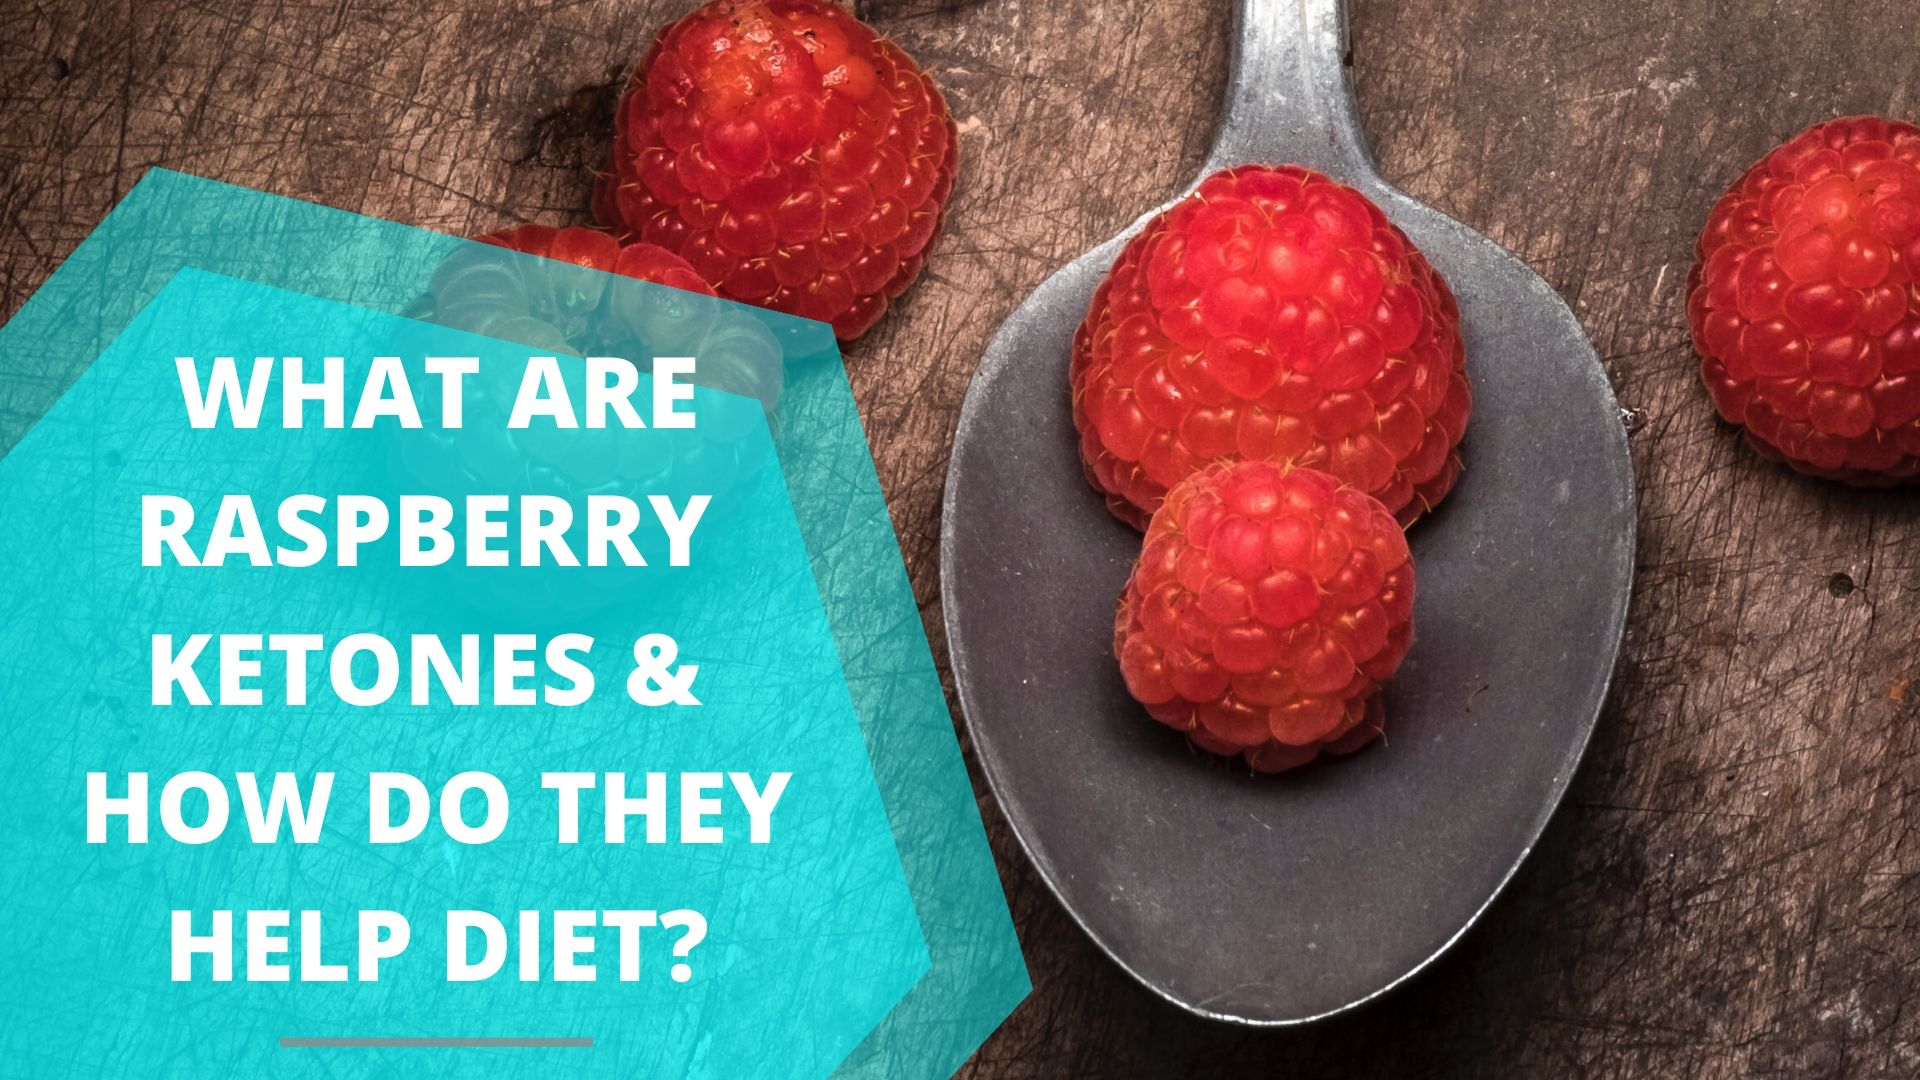 What Are Raspberry Ketones & How Do They Help Diet?